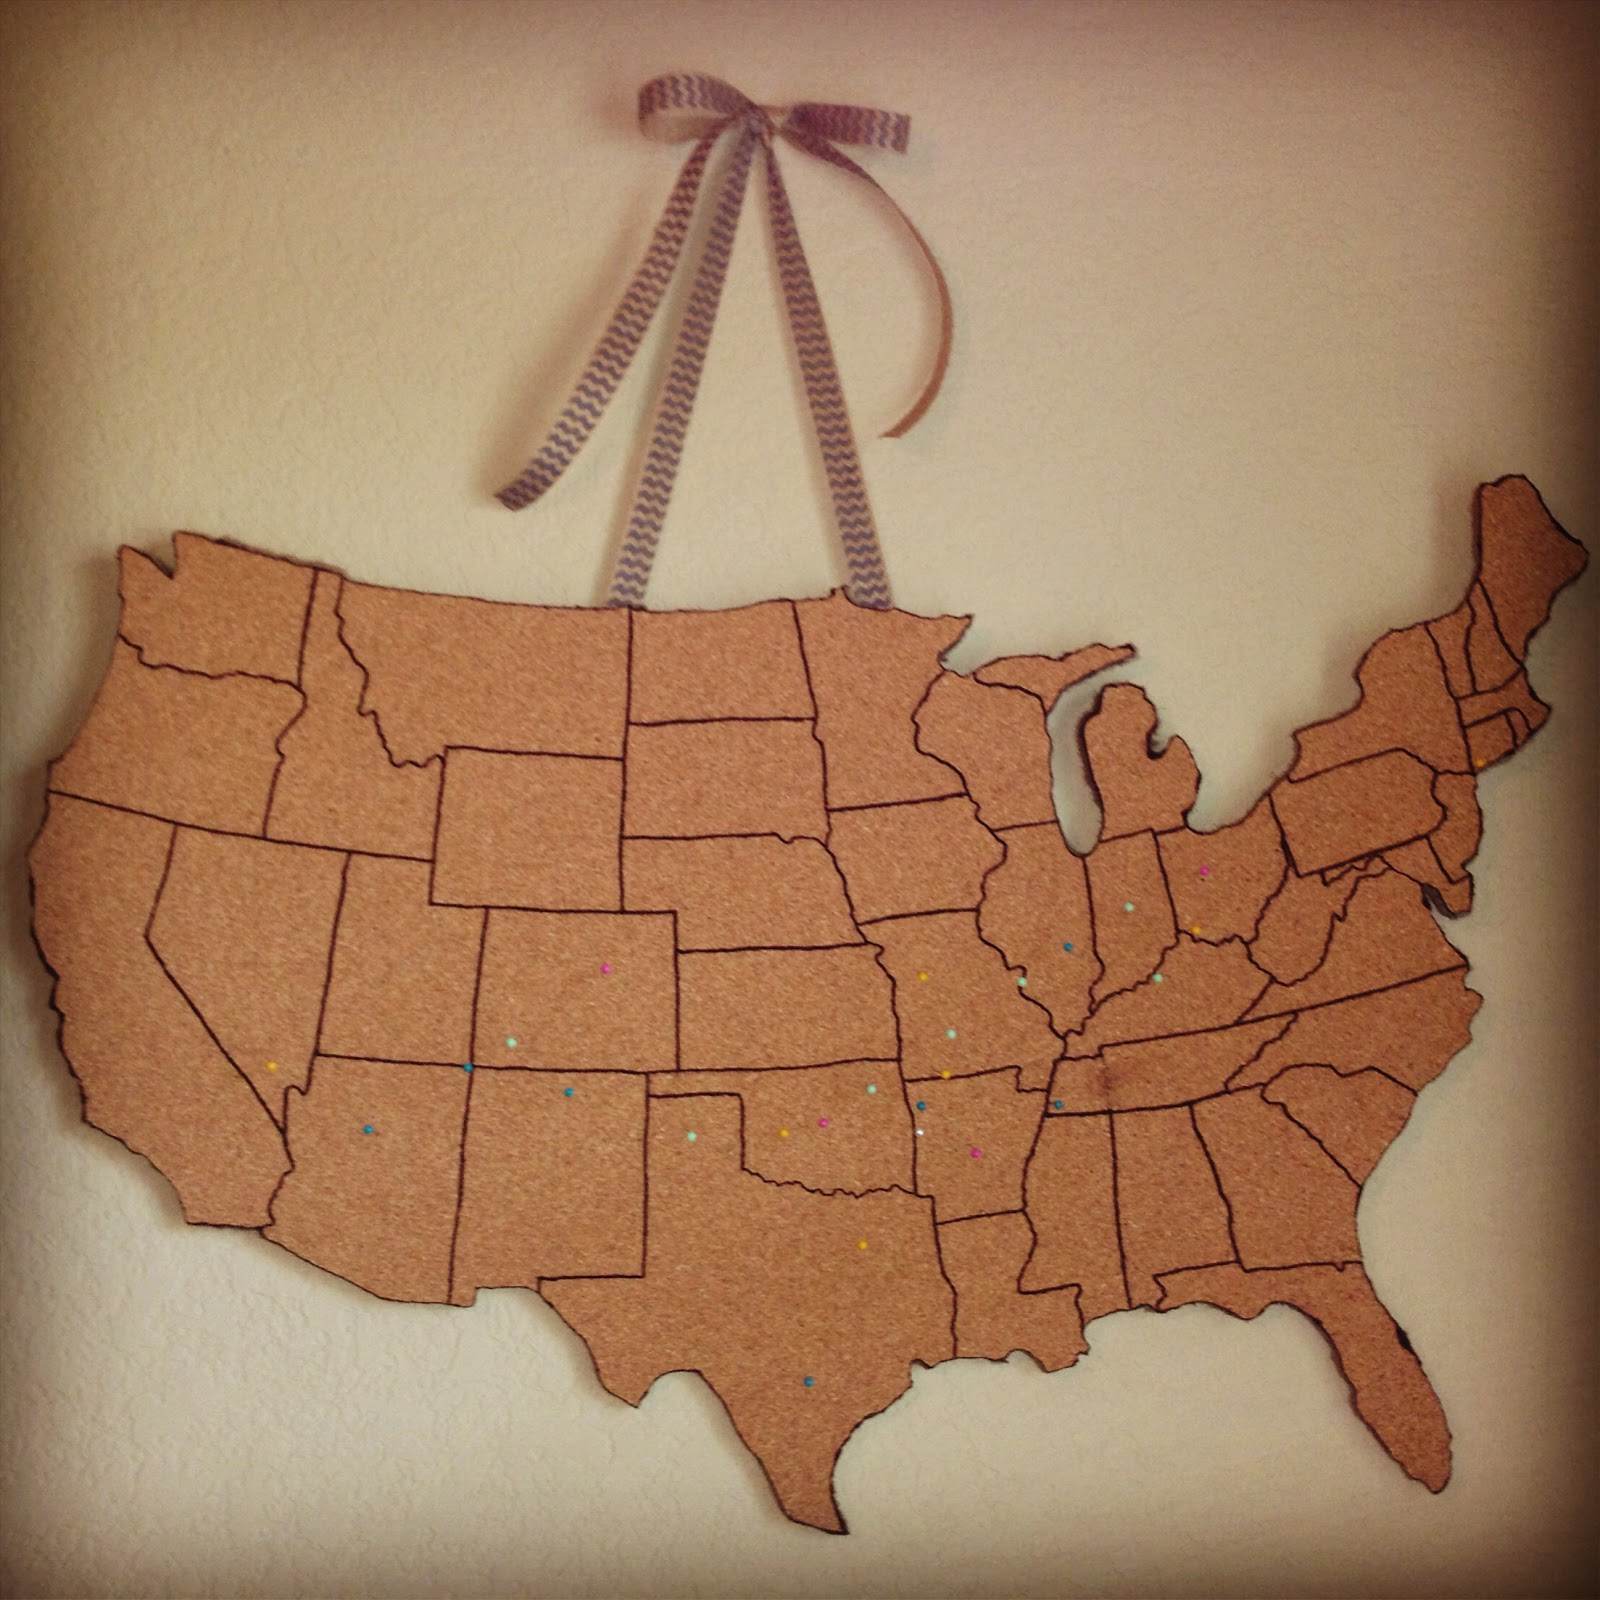 Karens Pirate Life DIY Corkboard Map Tutorial - Us travel map on cork board